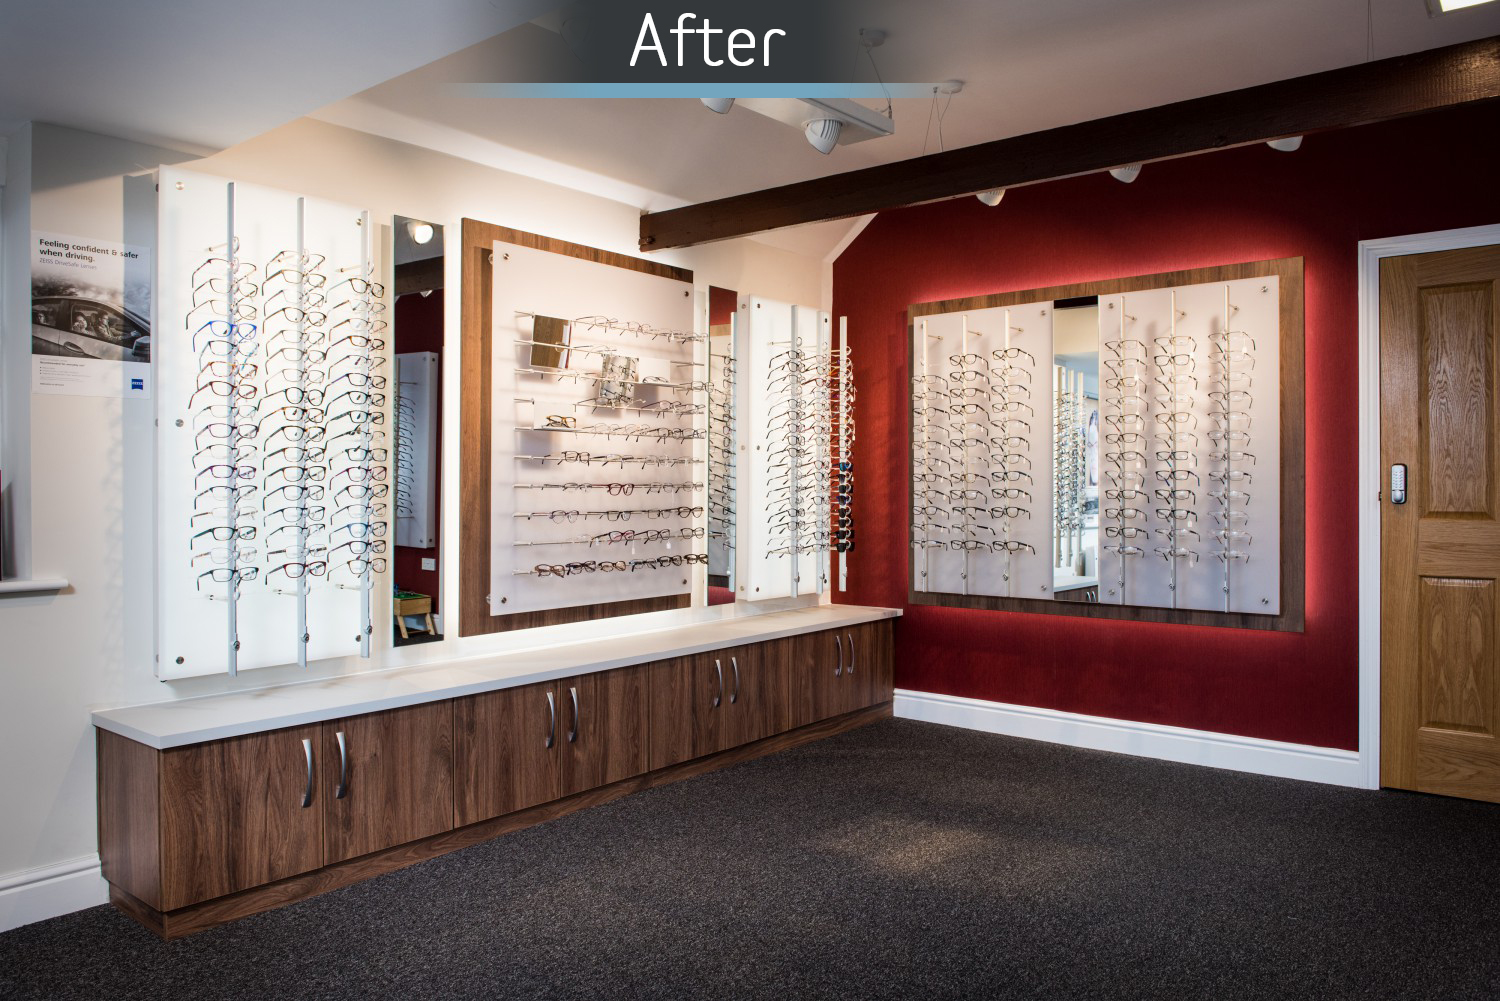 Martin Storey opticians after commercial Interior design and refurbishment by Mewscraft